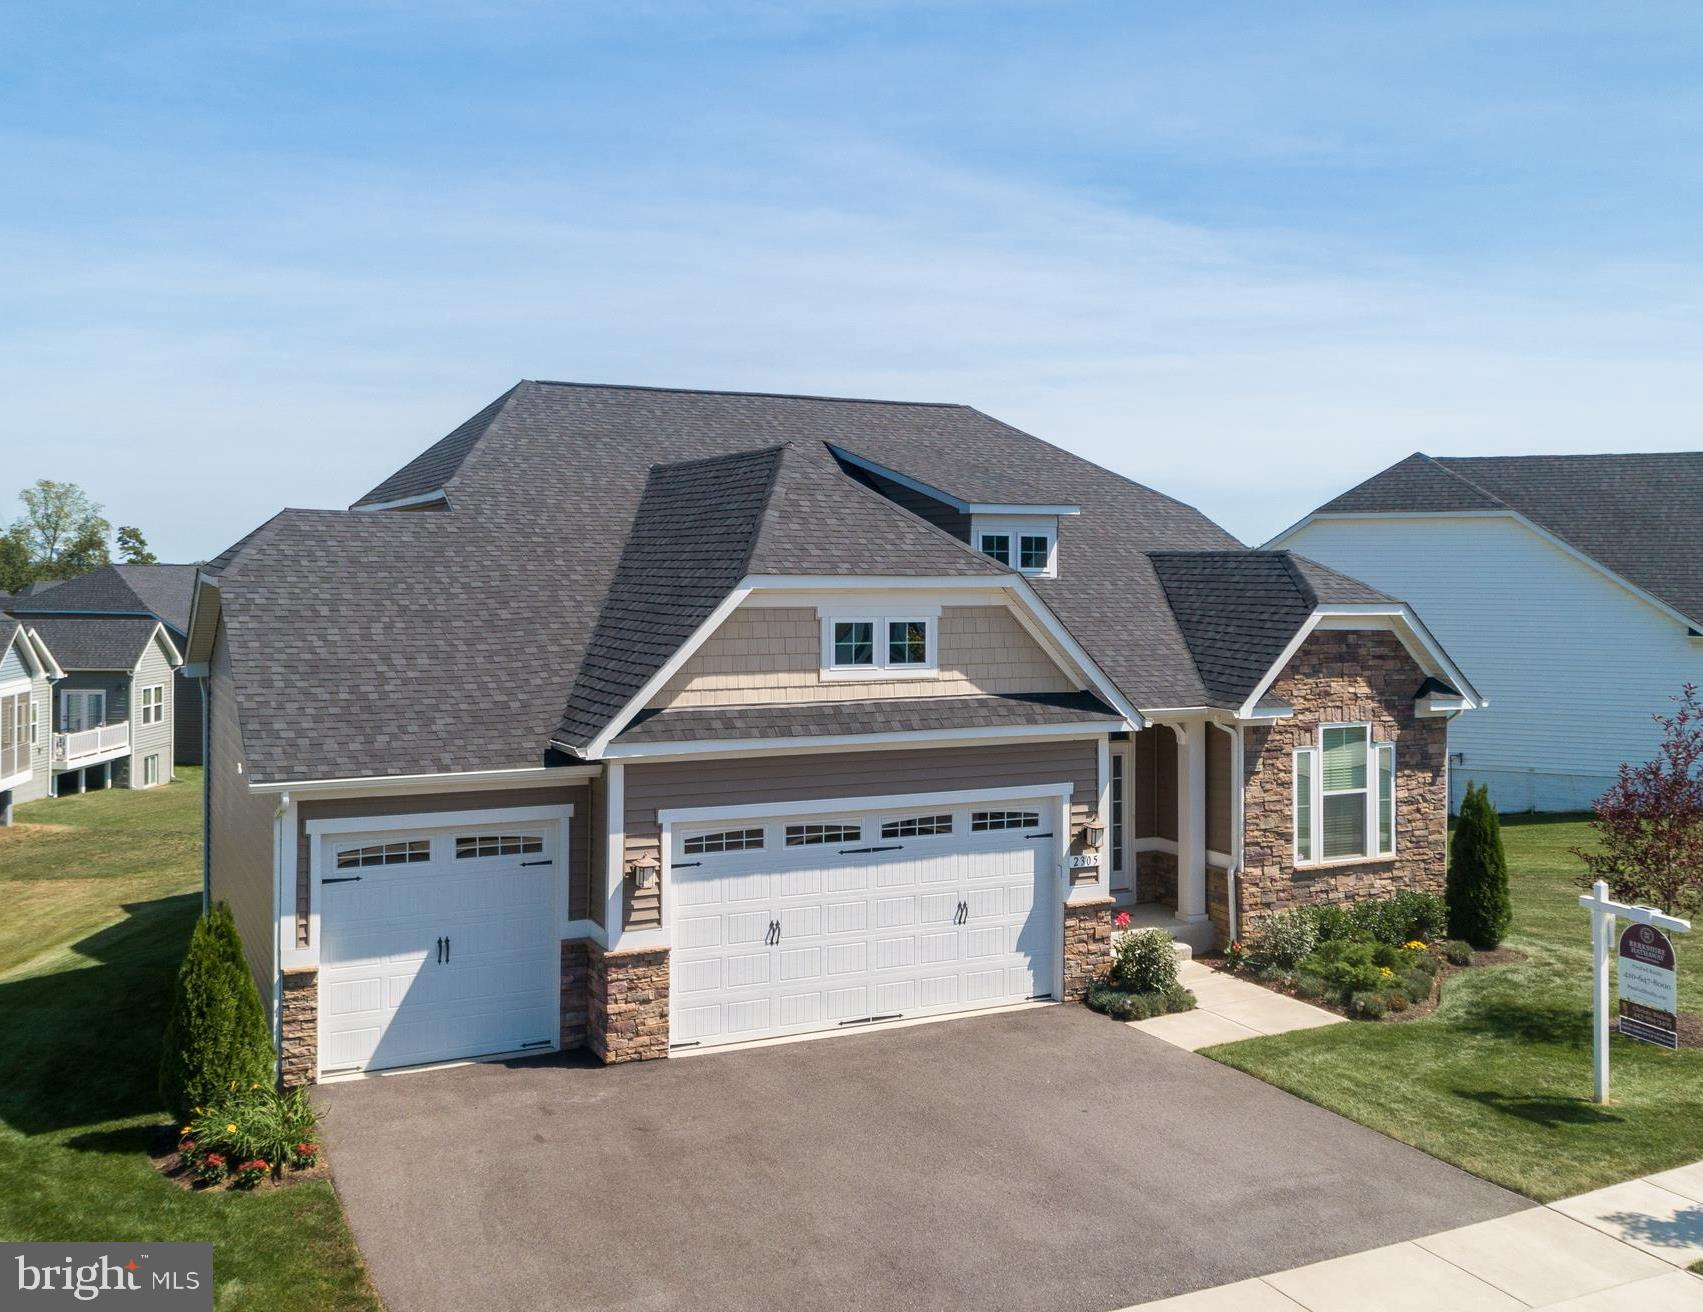 2305 MOURNING DOVE DRIVE, ODENTON, MD 21113